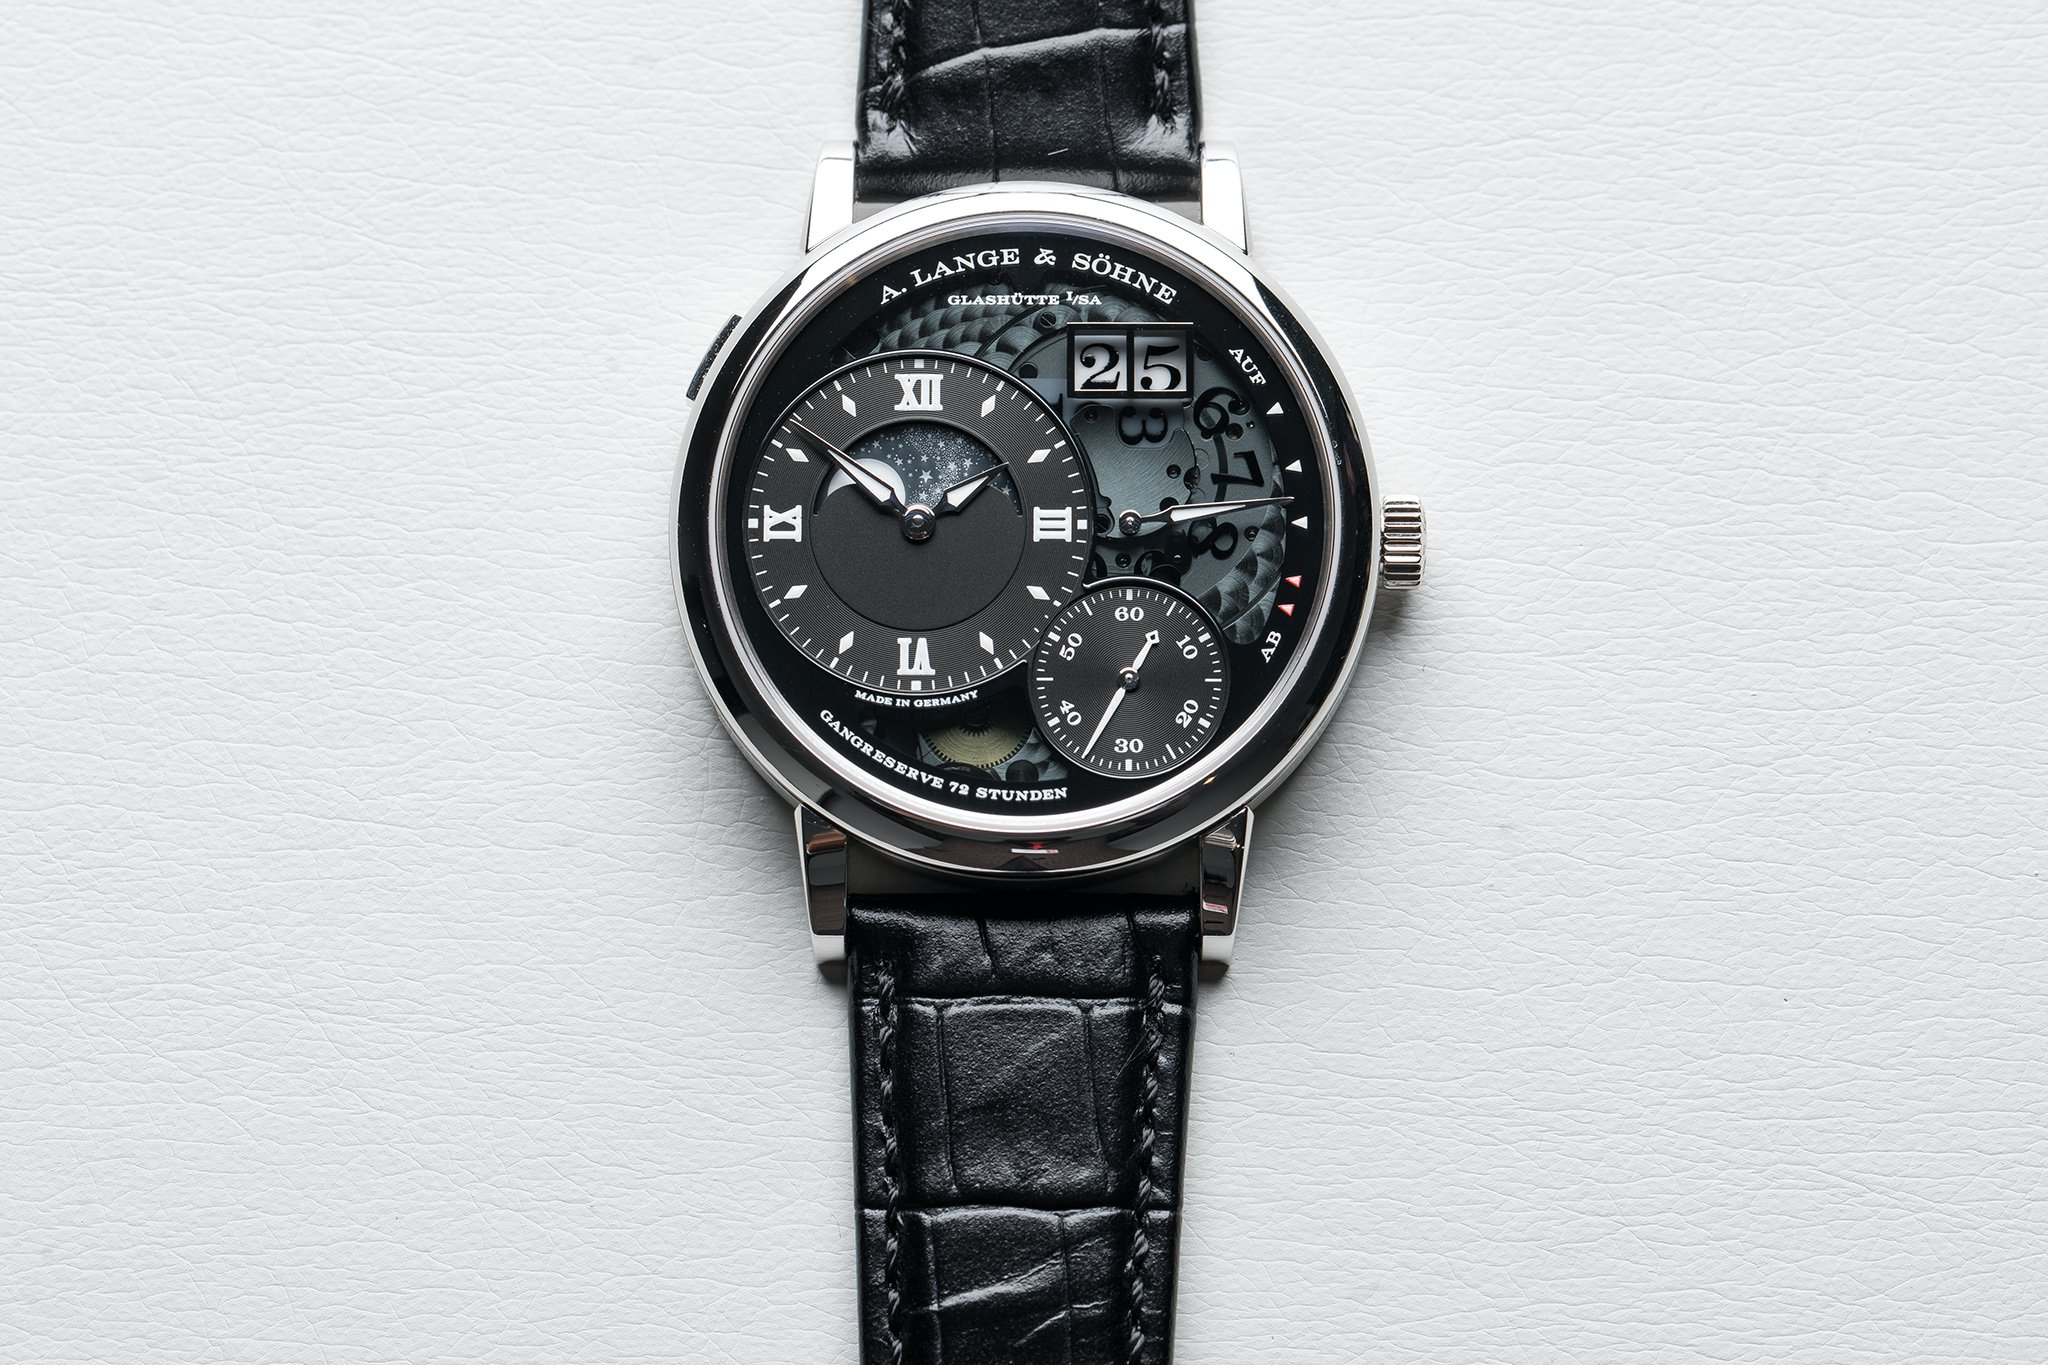 Introducing The A. Lange & Sohne Grand Lange 1 Moon Phase Lumen Replica Watch